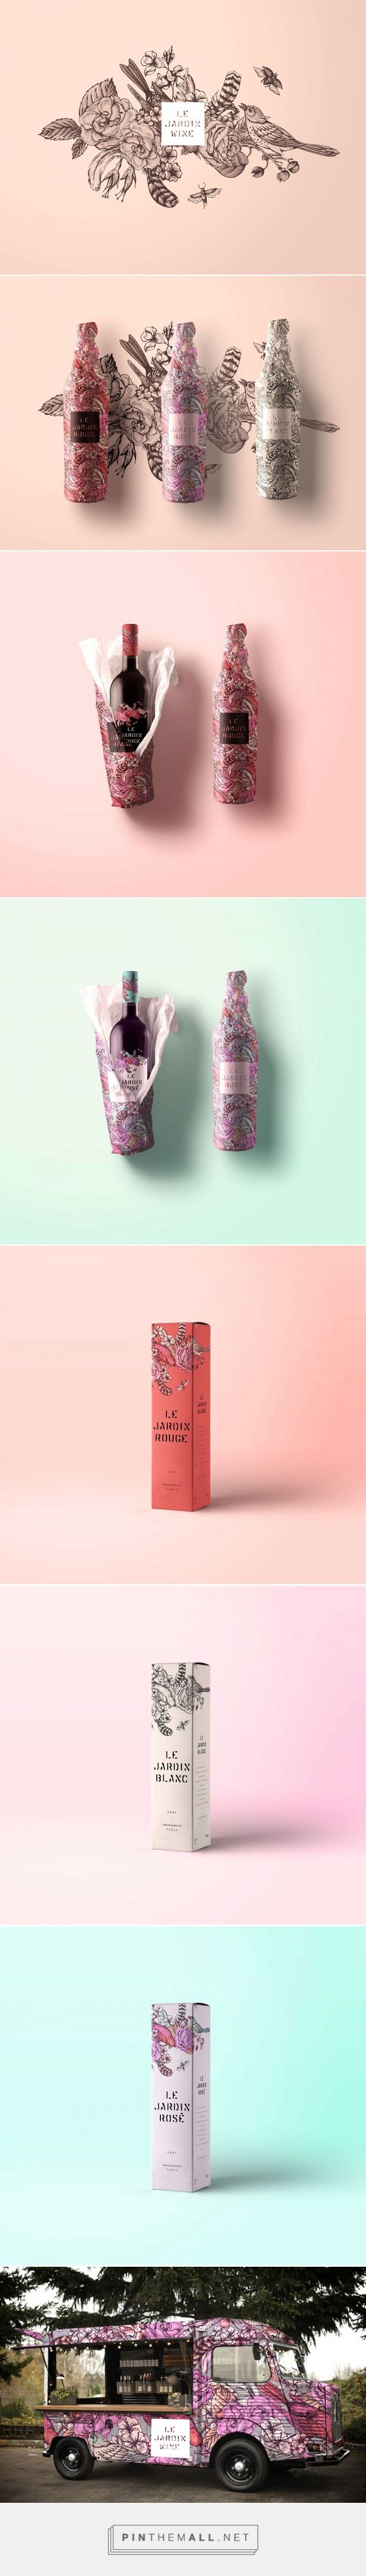 Branding, graphic design and packaging for Le Jardin Tattoo Wine Packaging on Behance by Sarah Gwan Toronto Ontario curated by Packaging Diva PD. How pretty is this wine concept packaging?